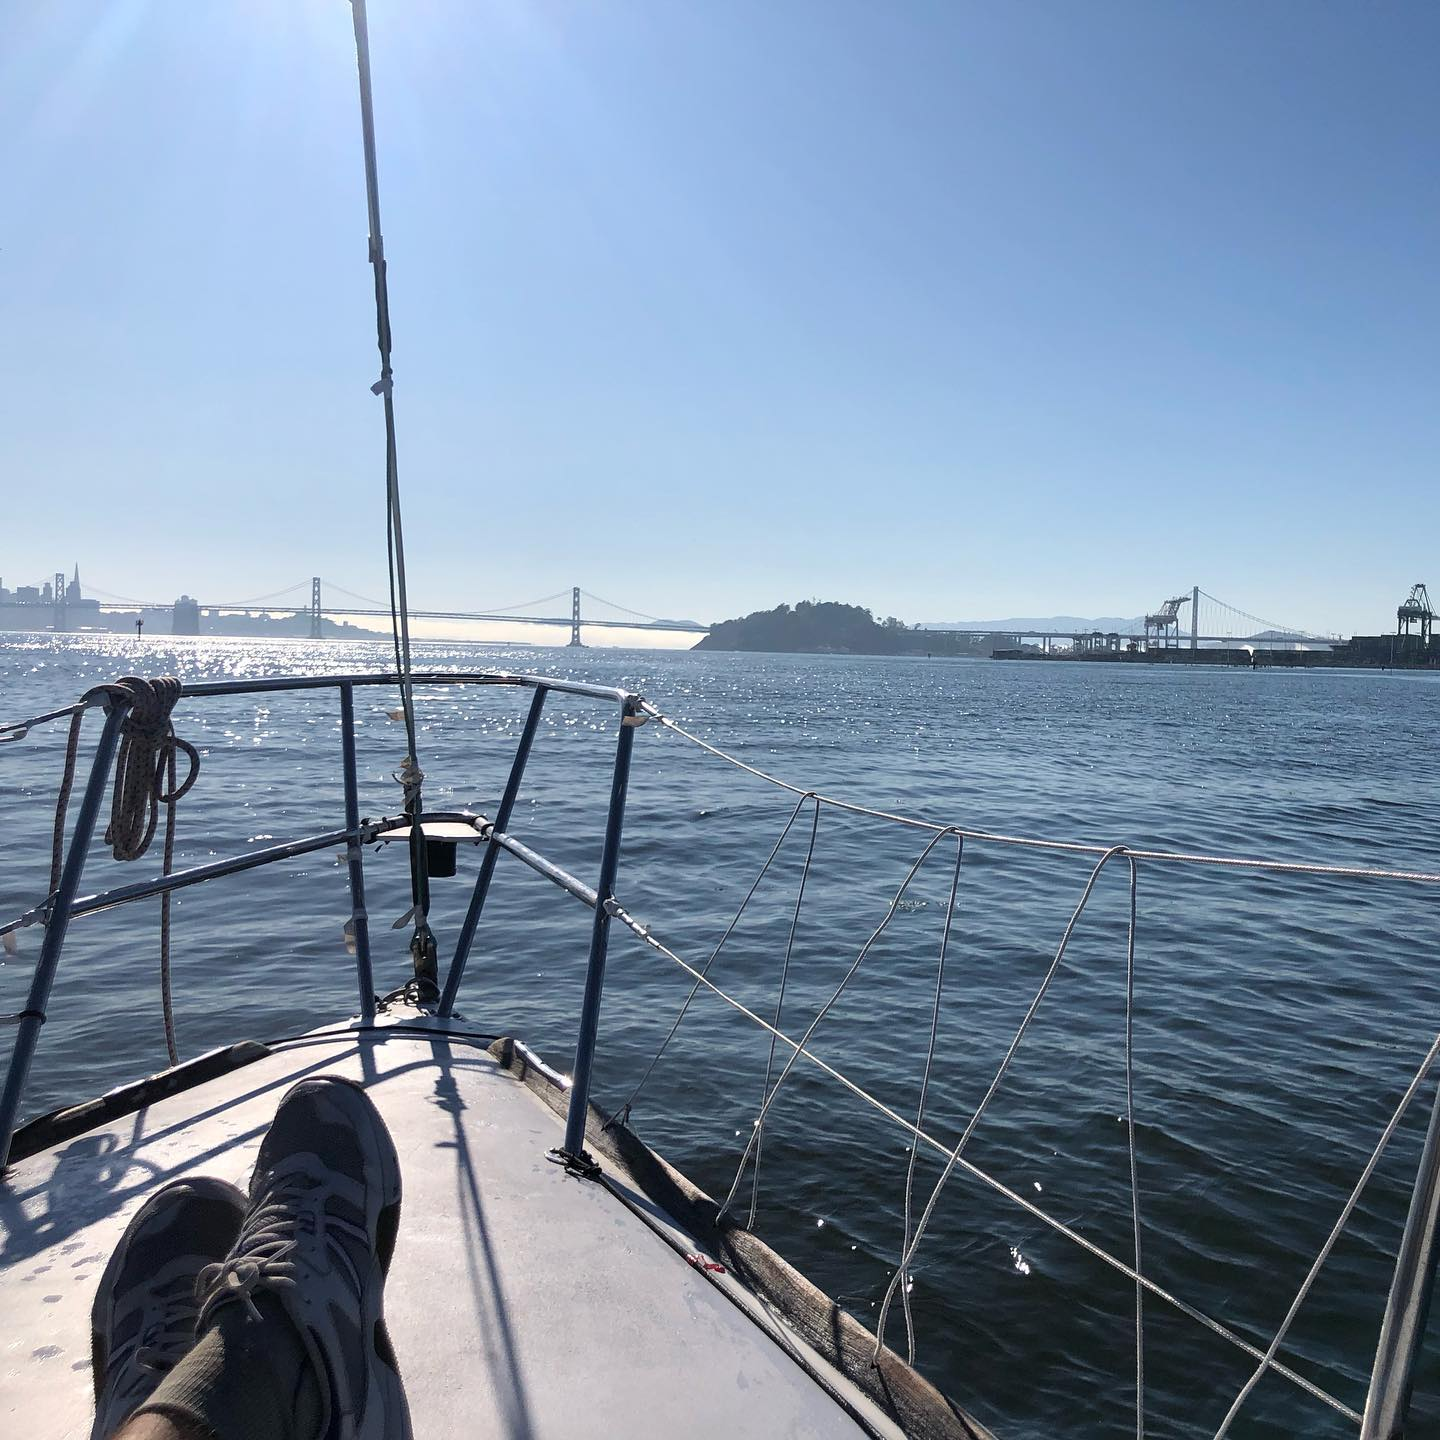 GREAT day on Stewball for the win in the Encinal Pt. Bonita regatta :)